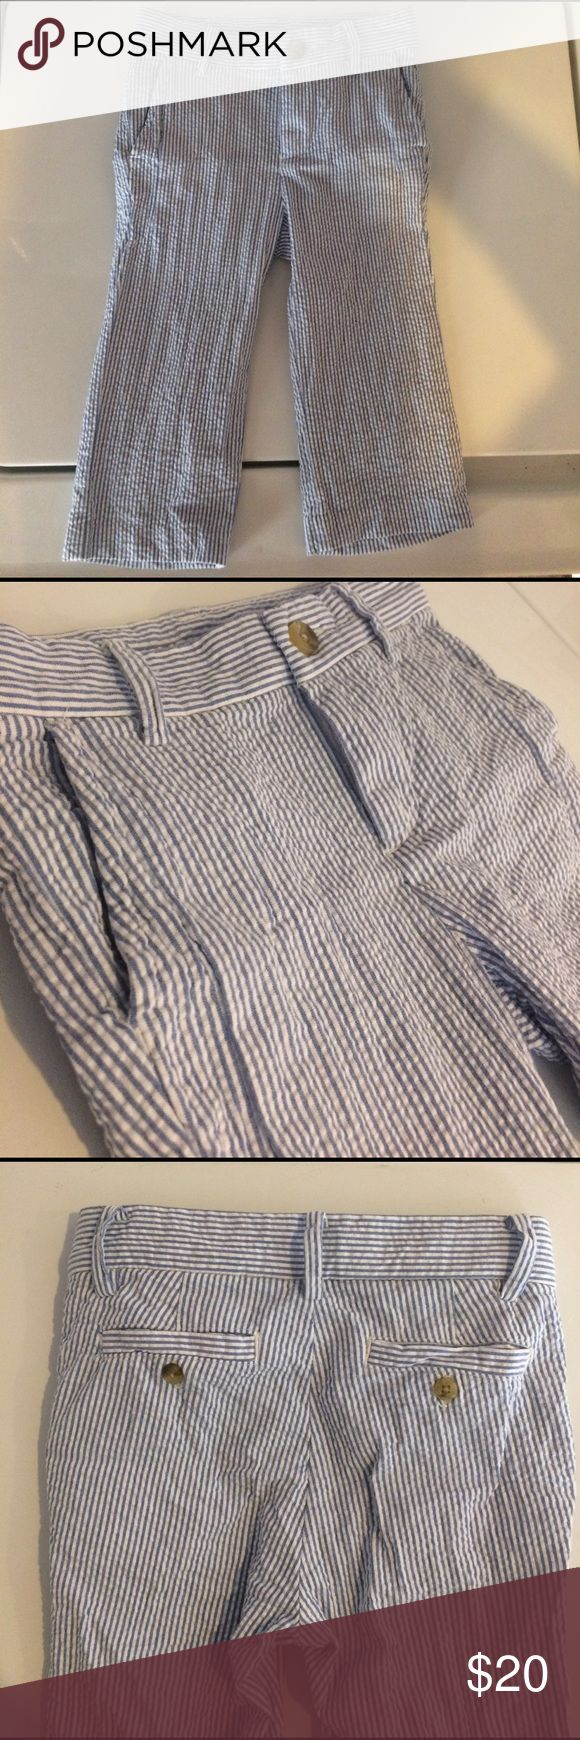 Janie and Jack blue seersucker pants Janie and Jack blue seersucker pants. Like new condition. Elastic band inside waist to make smaller or larger. Janie and Jack Bottoms Casual